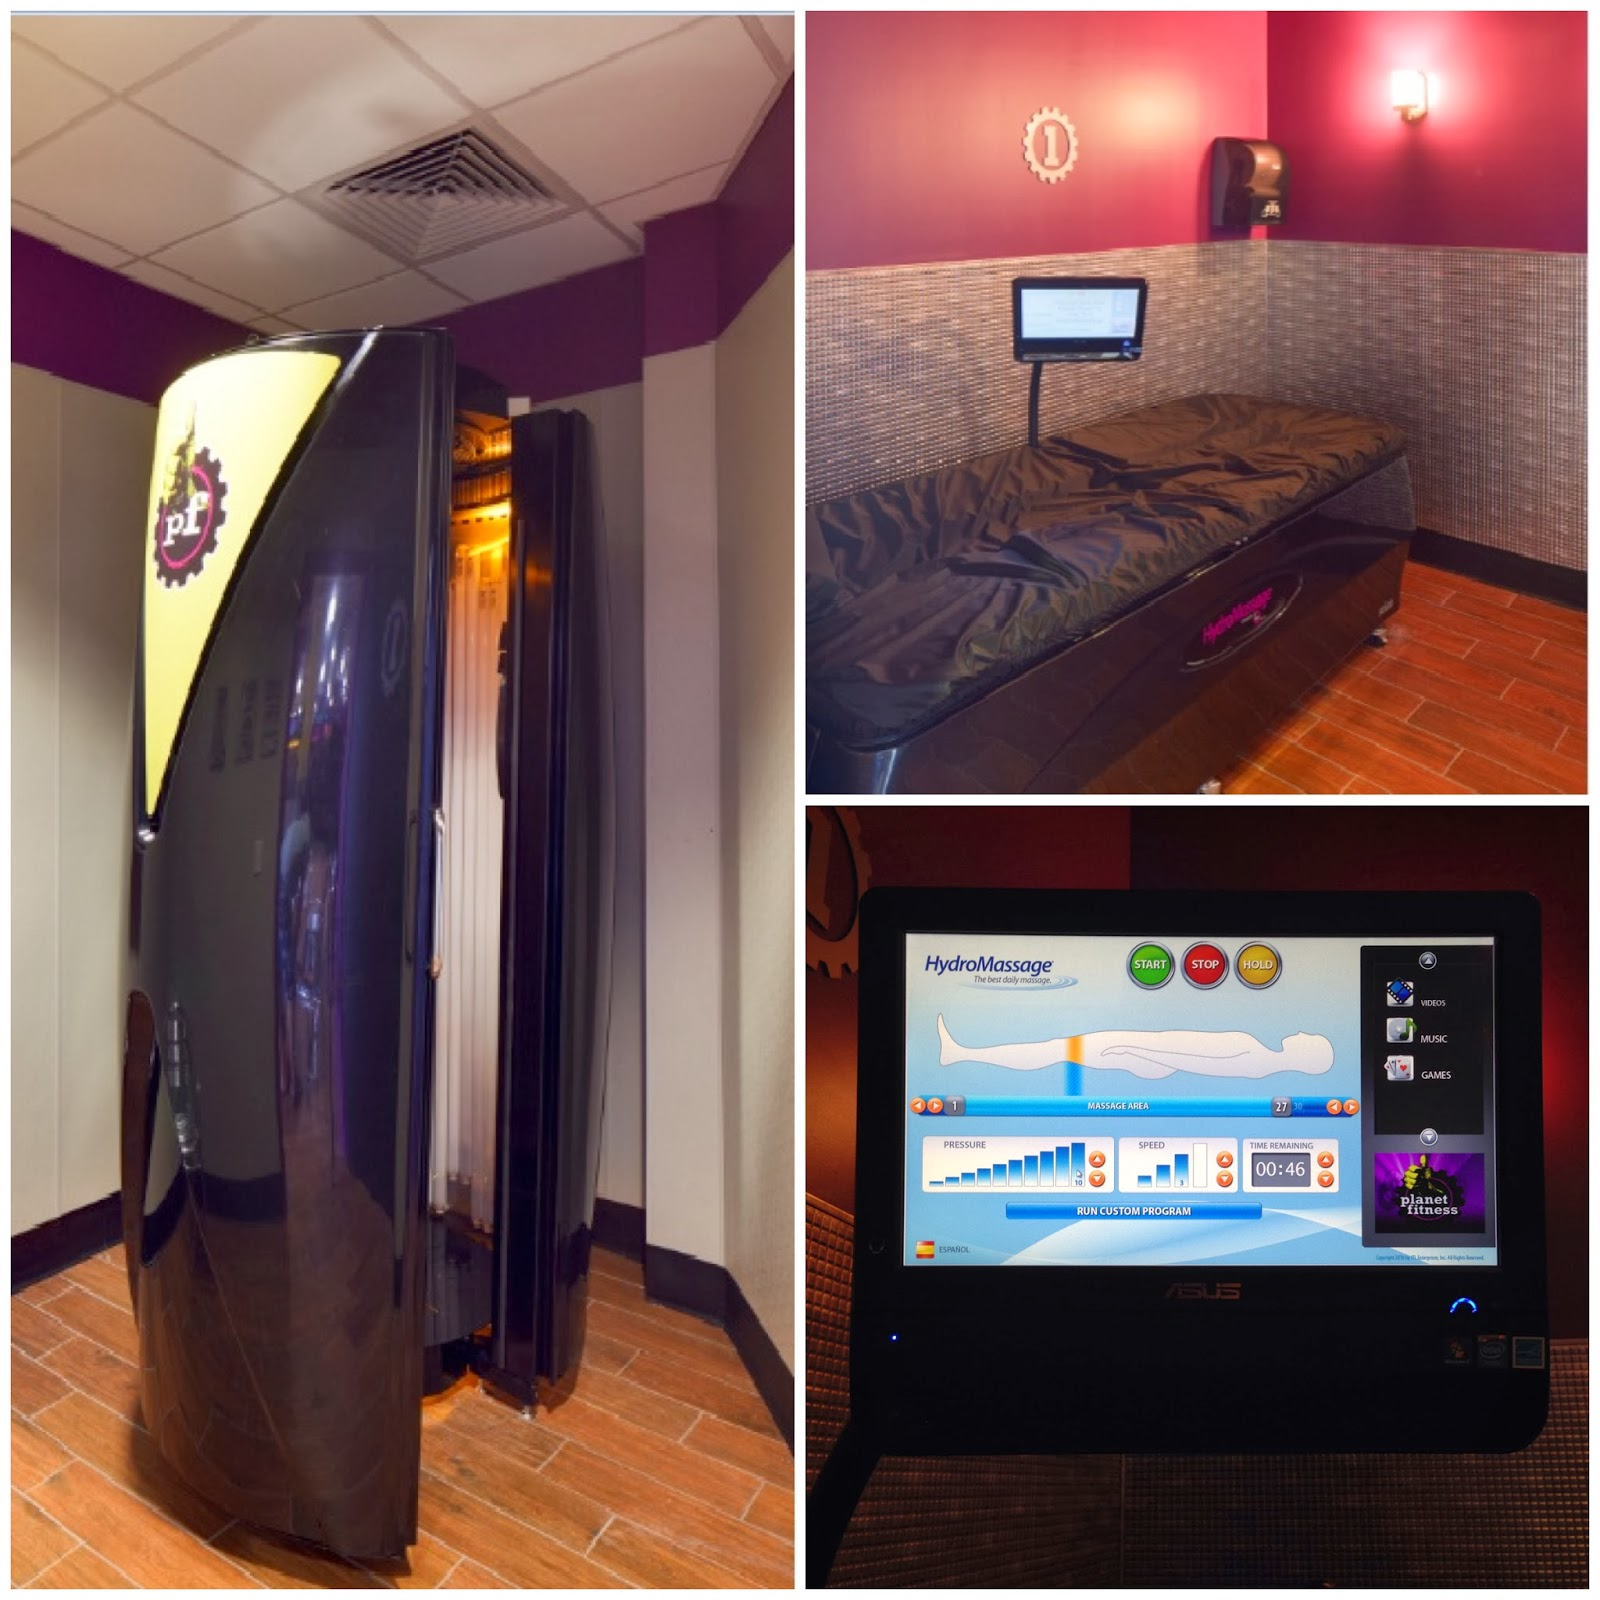 hydro massage chair dining room covers sydney young at heart mommy get fit planet fitness in south